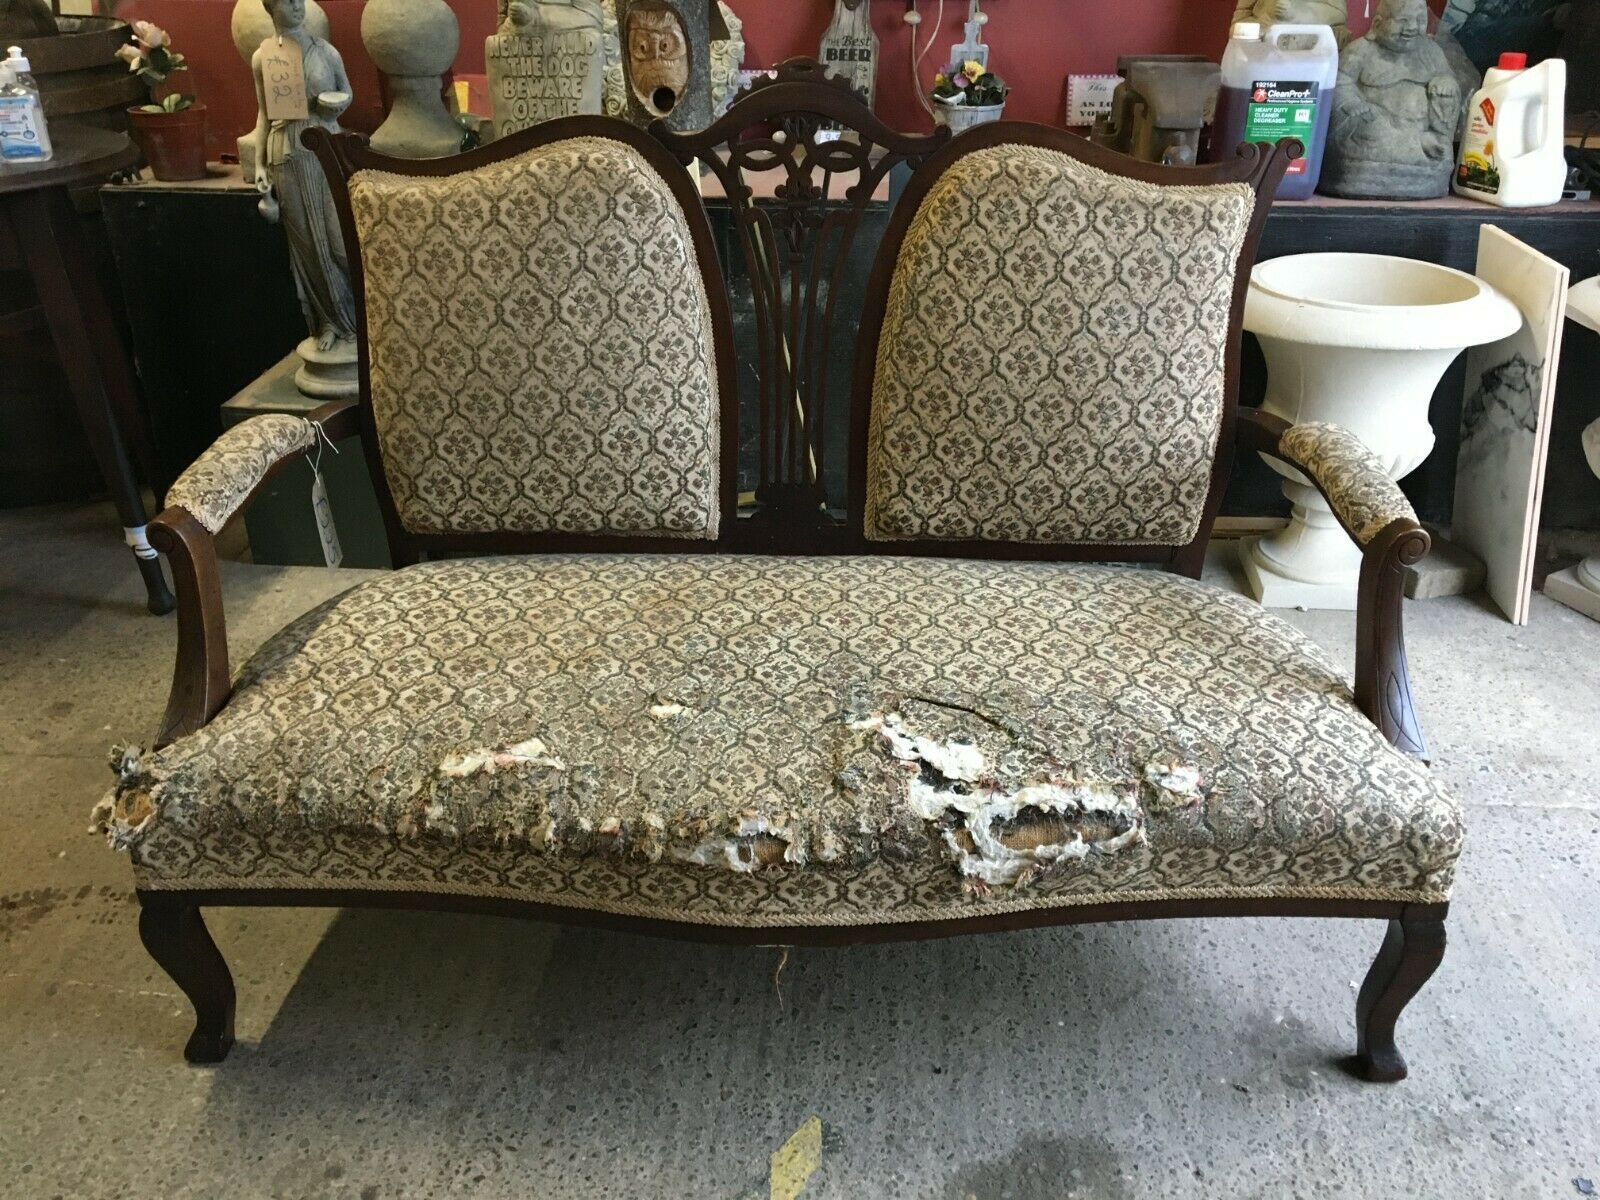 Vintage Settee Couch Dark Wood Grey Floral Fabric For Reupholstering Ebay